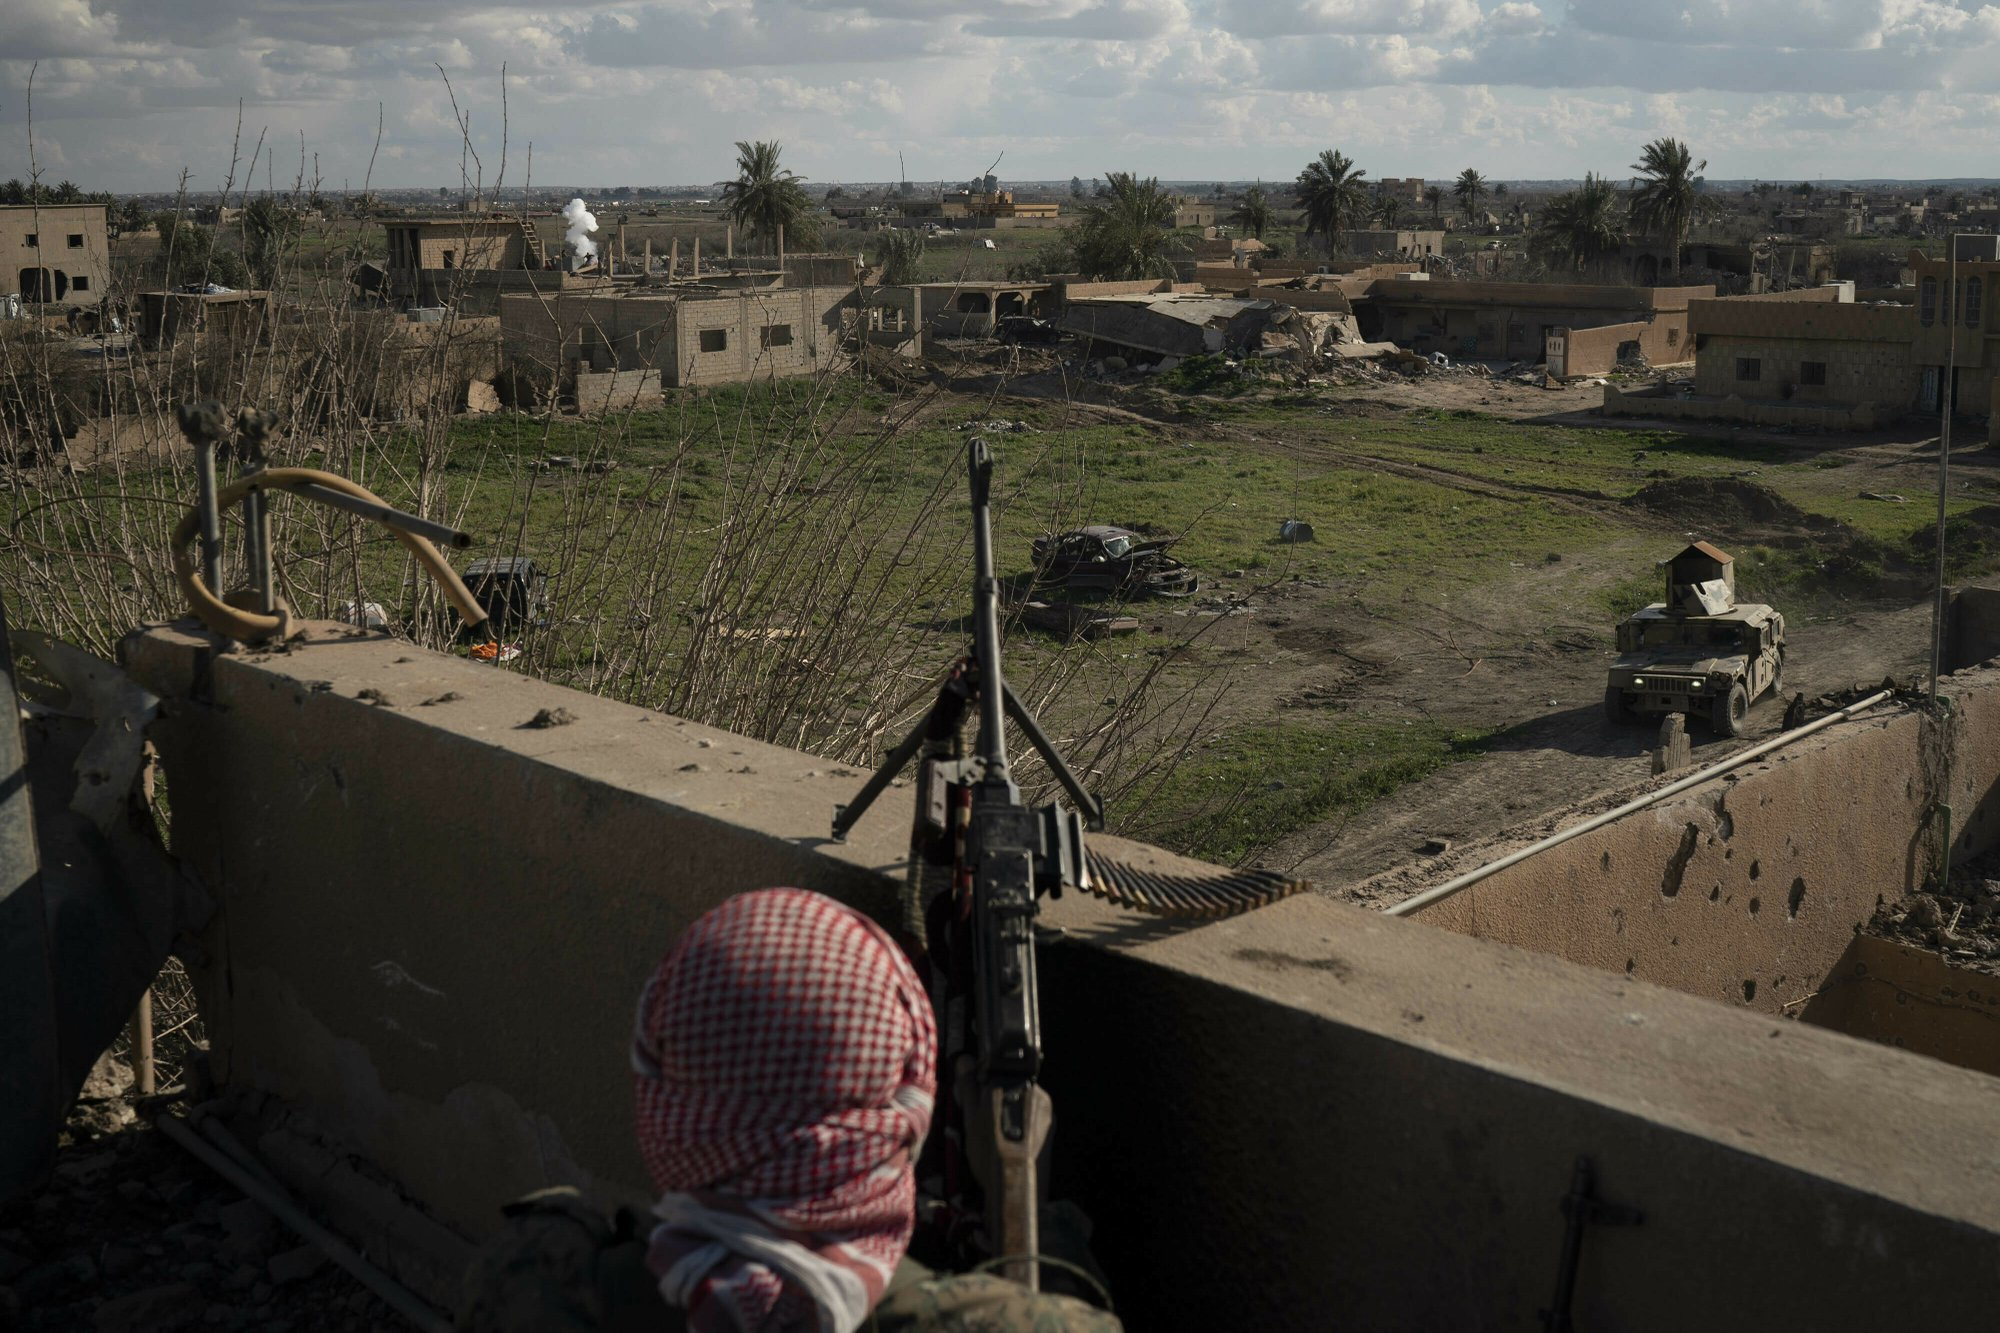 A US-backed Syrian Democratic Forces (SDF) fighter stands atop a building used as a temporary base near the last land still held by Islamic State militants in Baghouz, Syria, on Monday, Feb. 18, 2019. Photo: AP